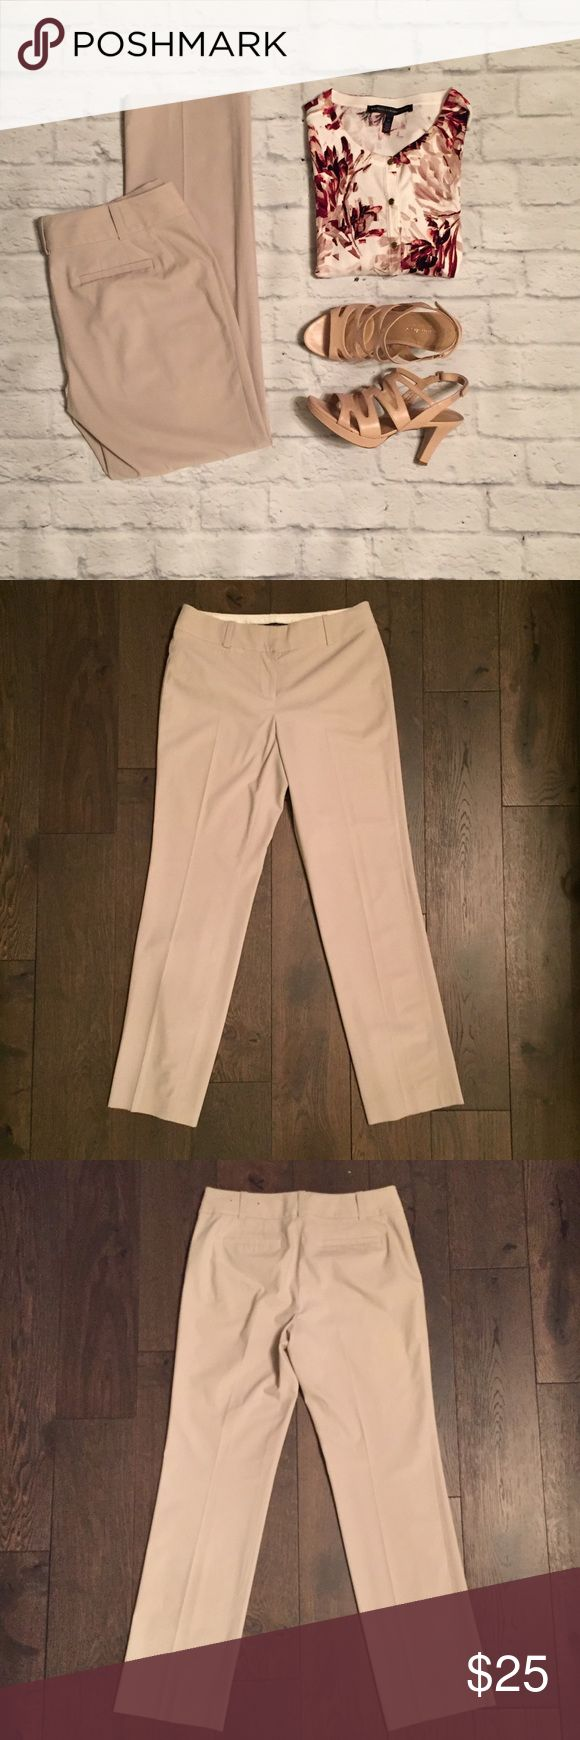 Ann Taylor Stone Straight Leg Pants Ann Taylor stone Straight Leg Pants. Zip and hook closure. Two back pockets. See photo for fabric and care. Ann Taylor Pants Straight Leg